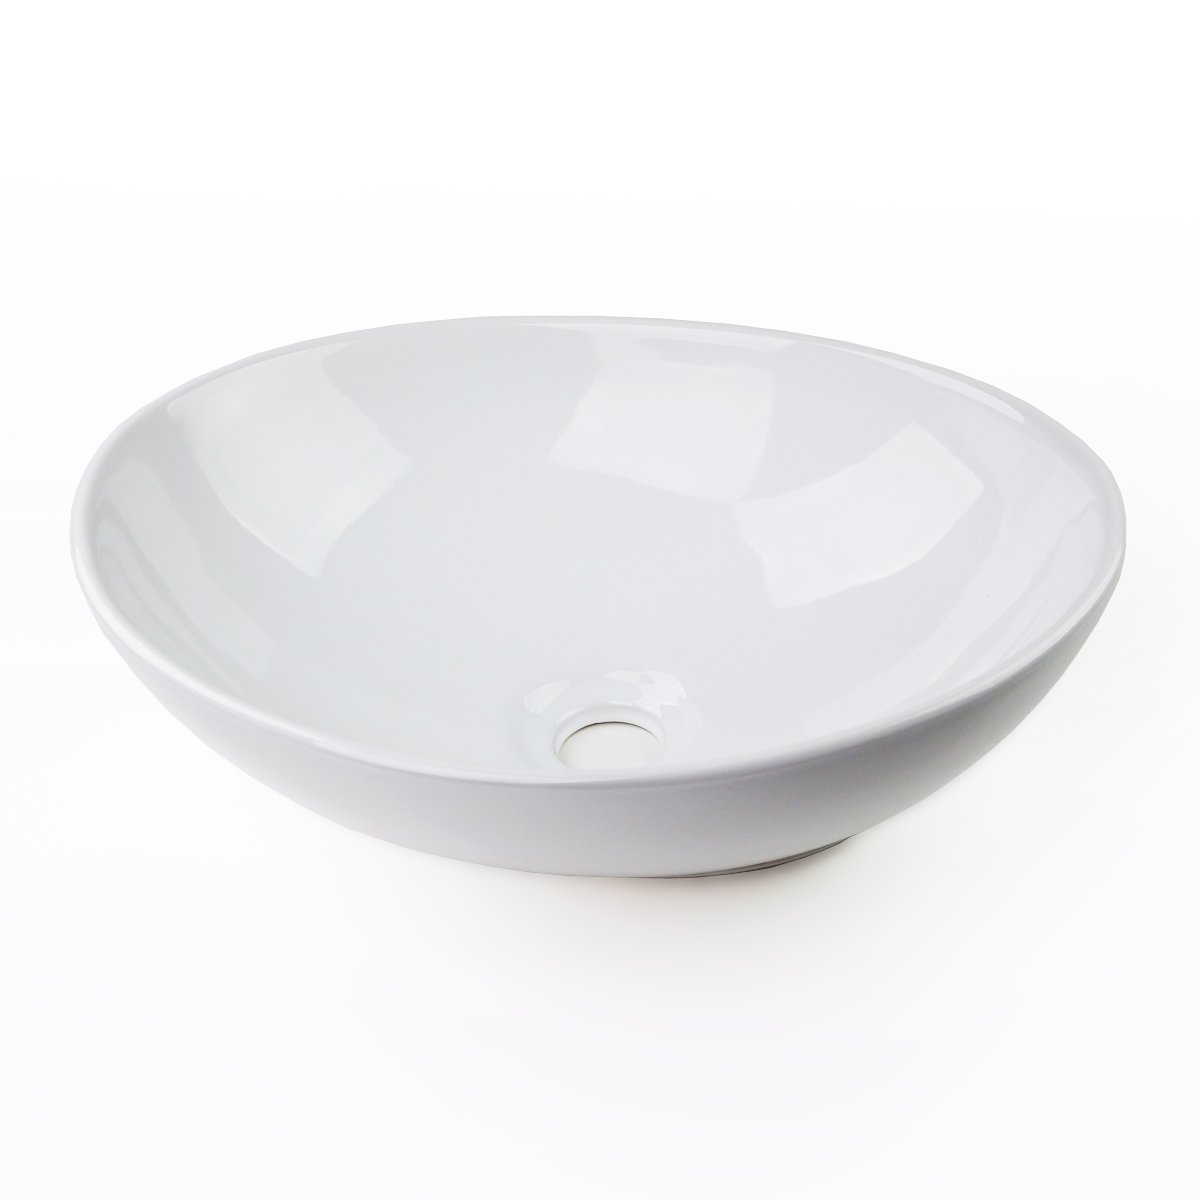 16''x13'' Egg Shape Ceramic Bathroom Vessel Sink Basin Faucet Without Overflow by FH